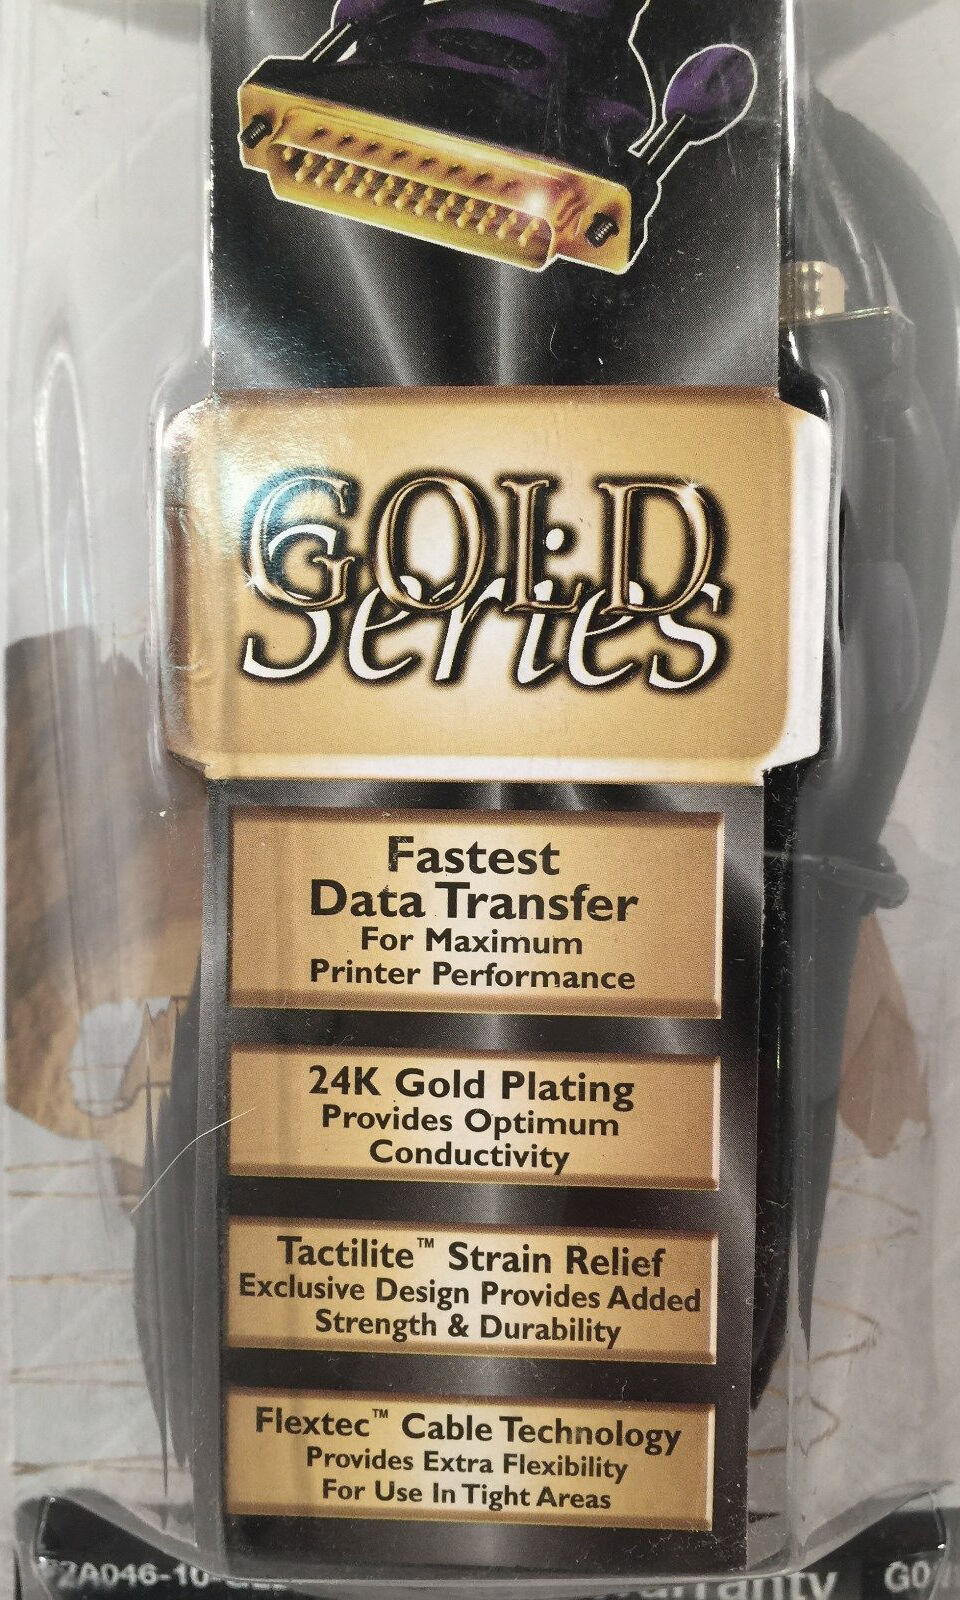 Belkin Printer 1284 Gold Series Cable 10 Feet IEEE A-B PC Compatible NWT - $6.99